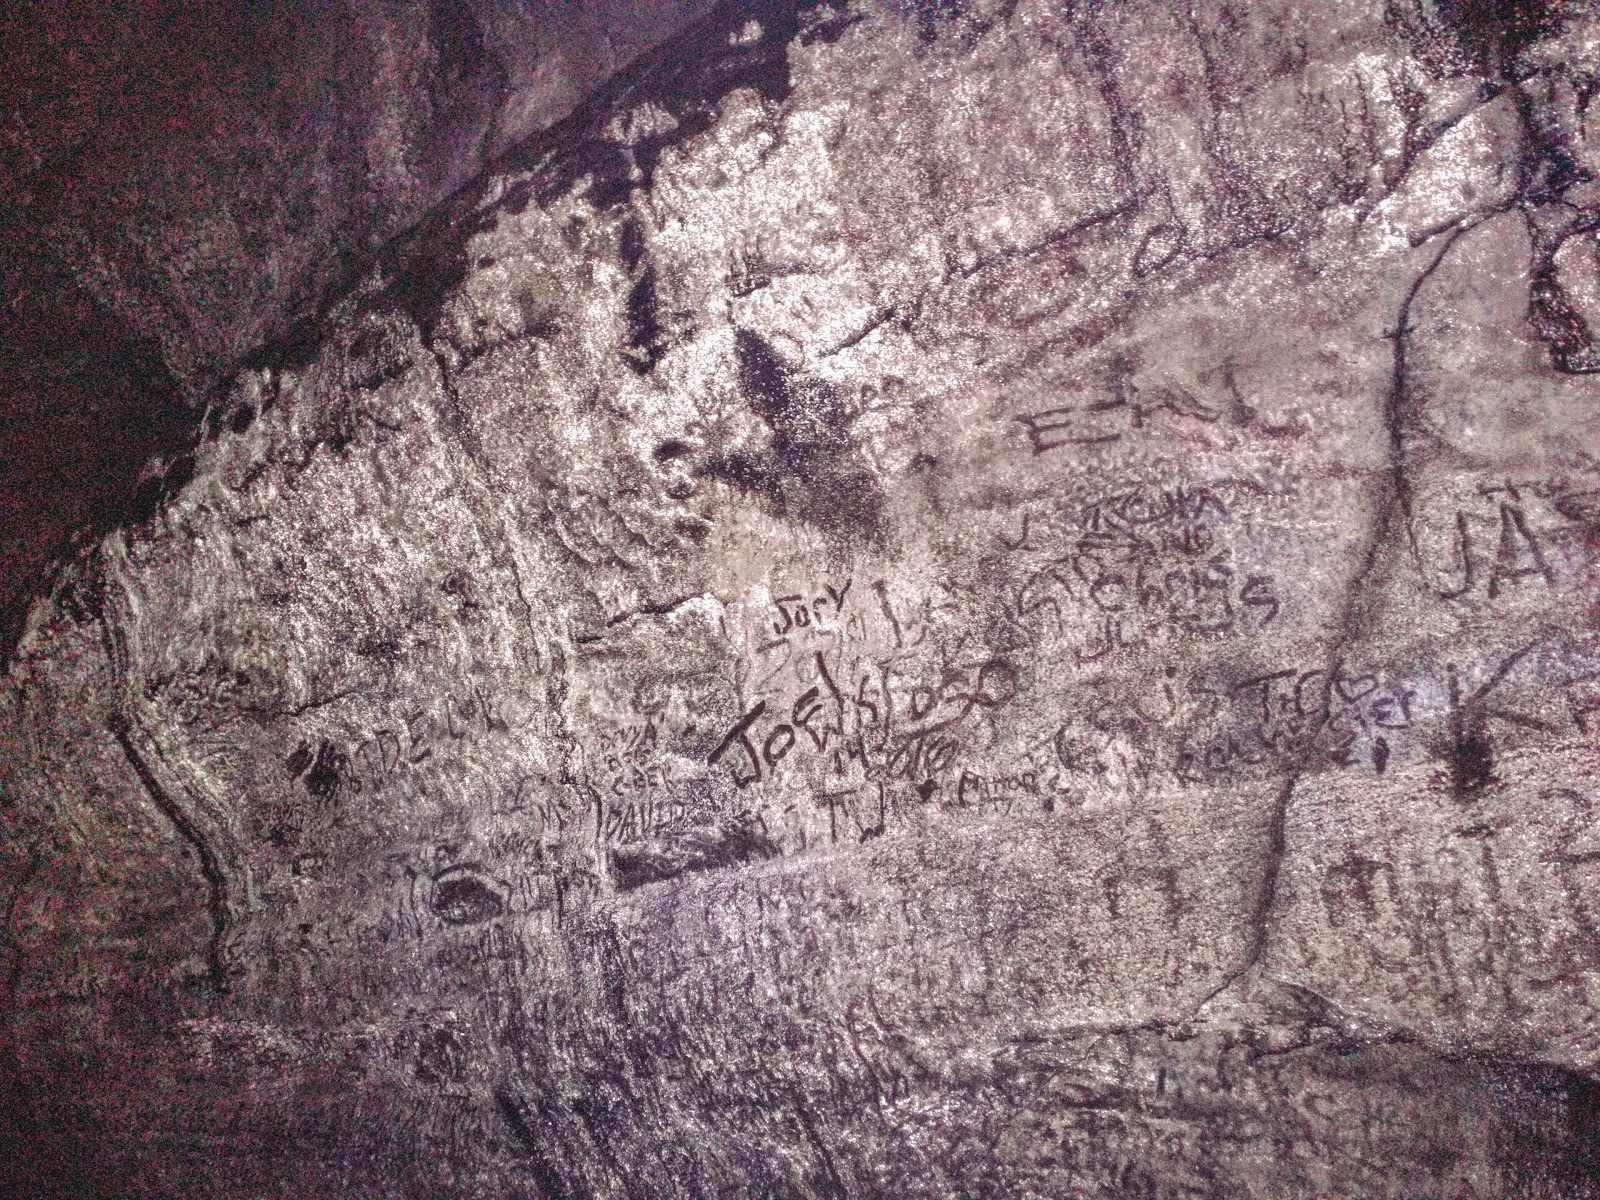 Walls of Ape Cave